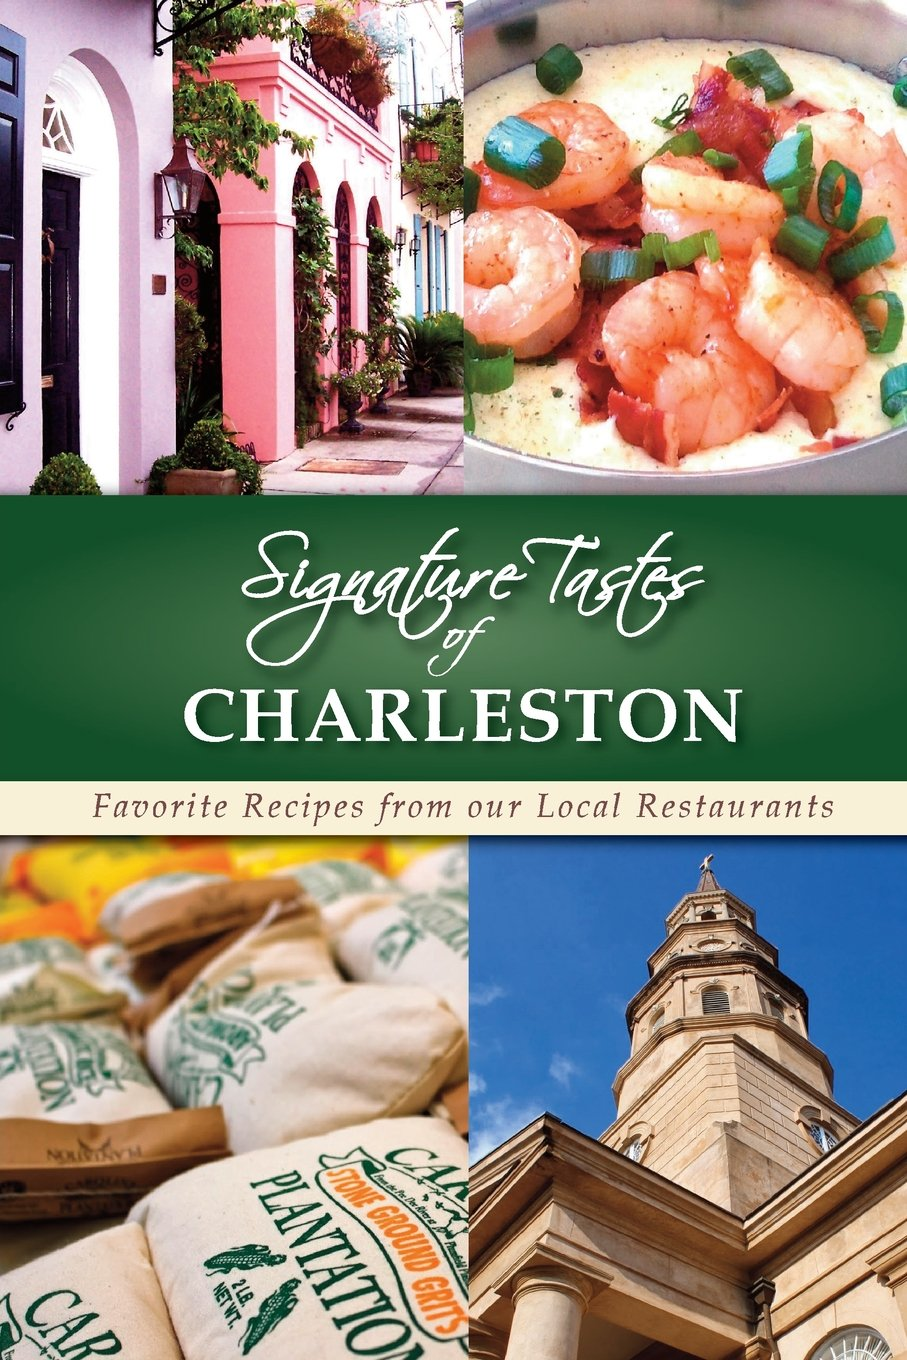 Signature Tastes of Charleston